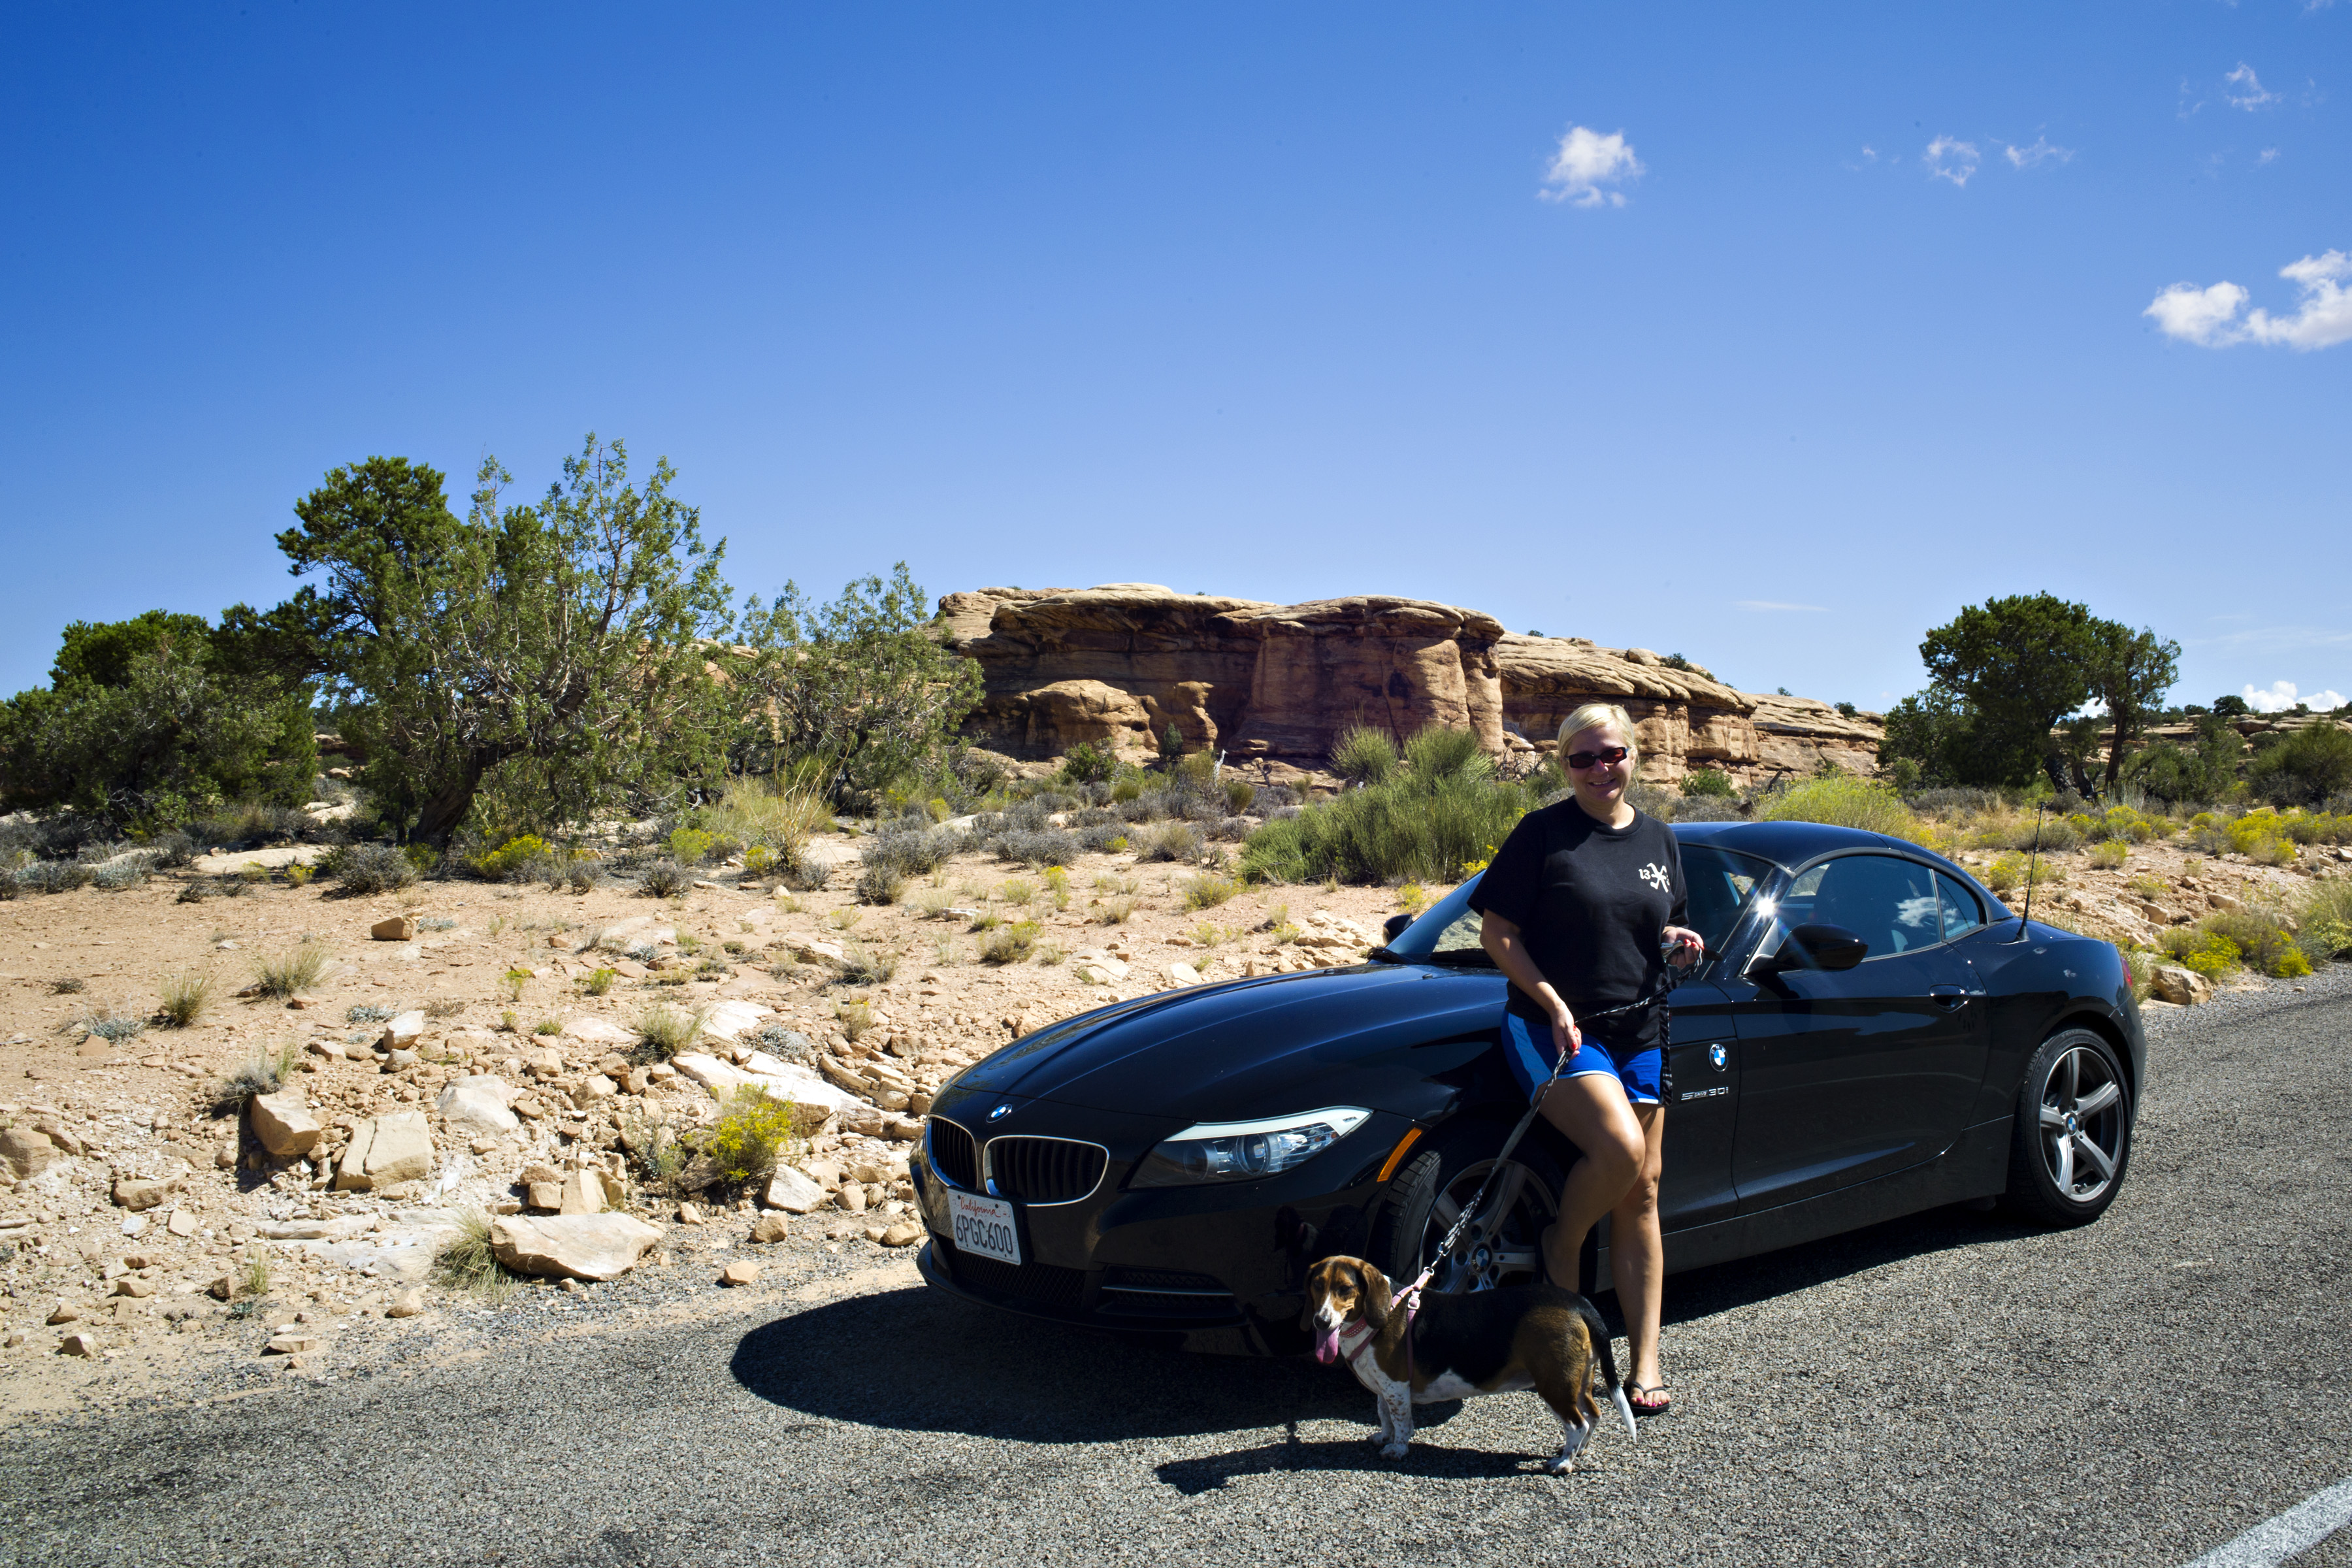 CANYONLANDS AND DOGGY DELIGHTS A Week In The Wonders Of Utah Lighting Leica